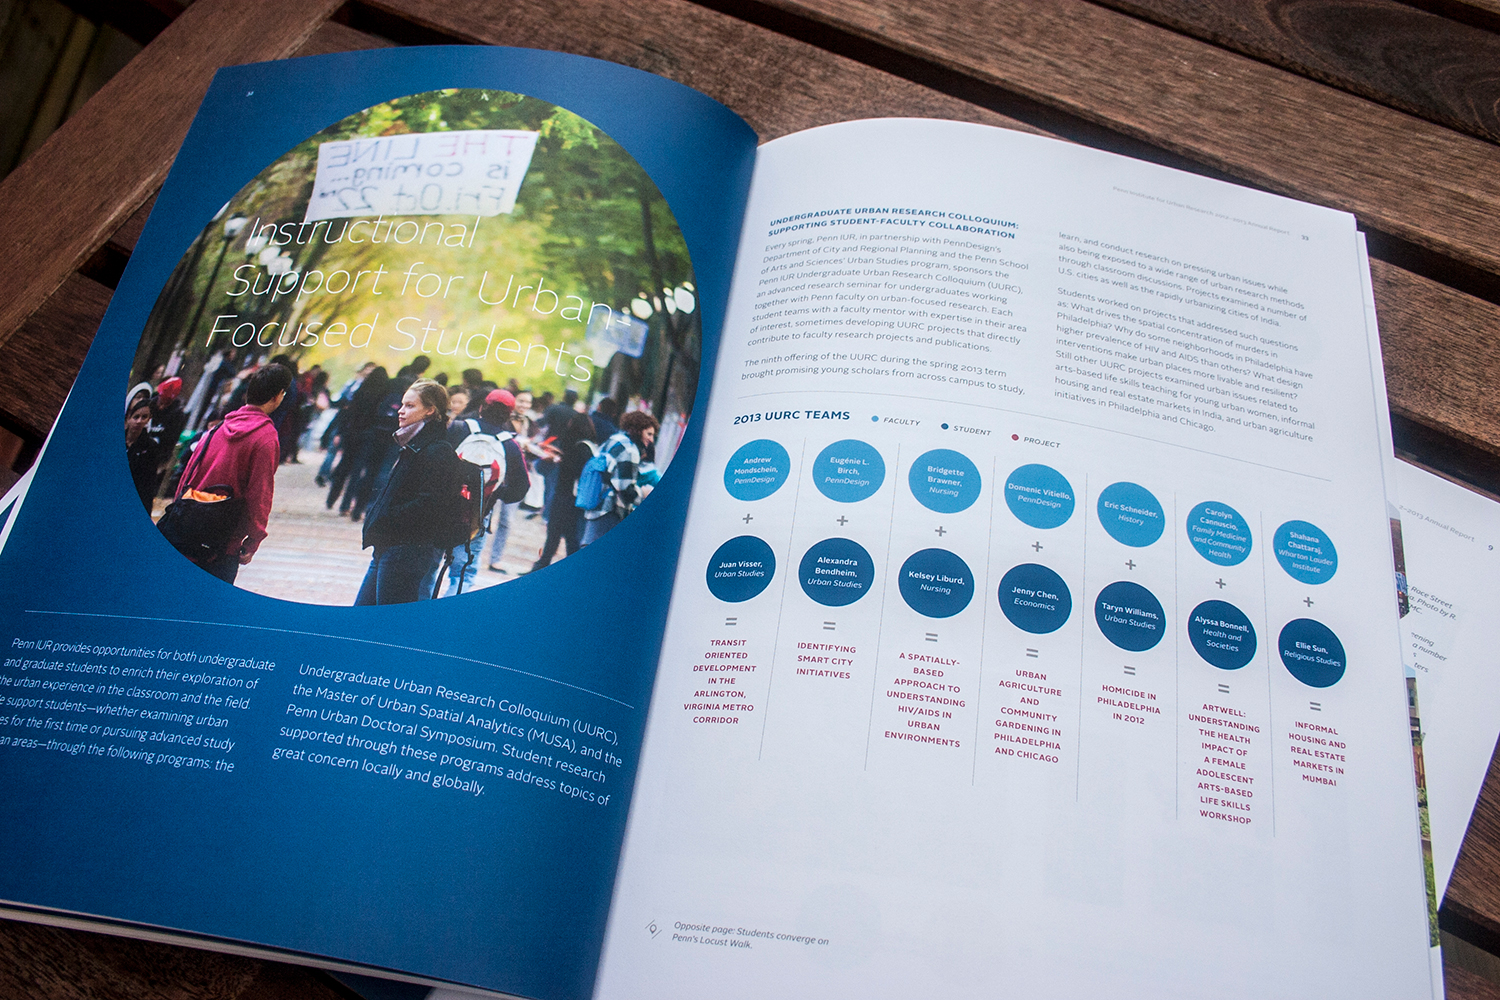 Penn Institute for Urban Research 2012 Annual Report: Local to Global, Julie Rado/Untuck Design